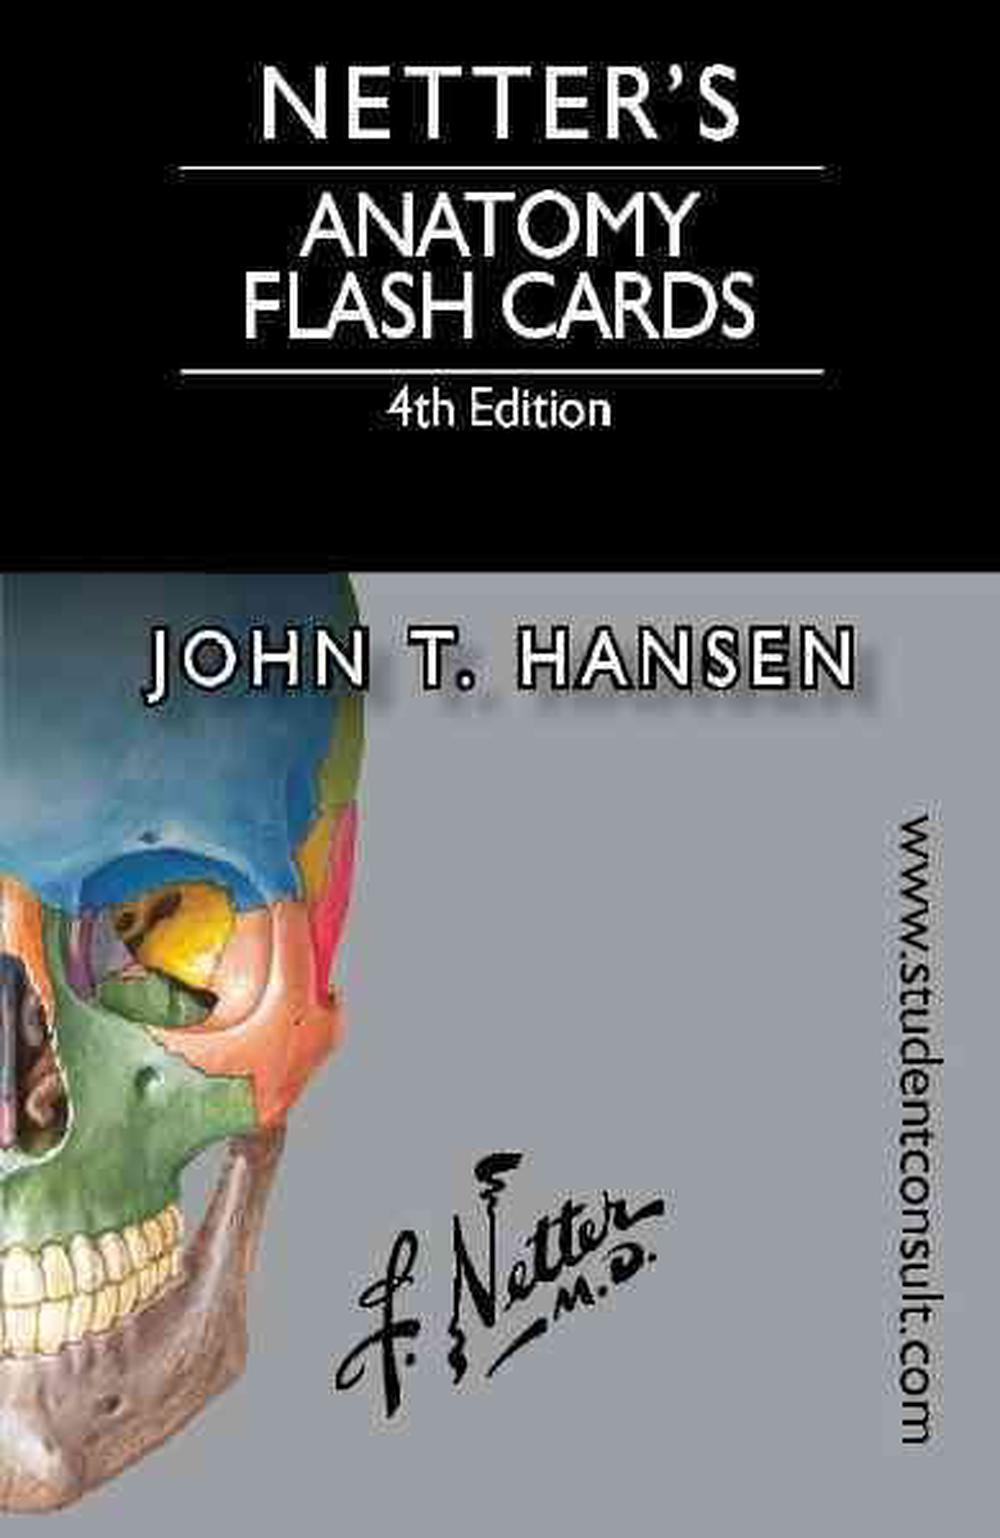 Netter\'s Anatomy Flash Cards, 4th Edition by John T. Hansen, Book ...